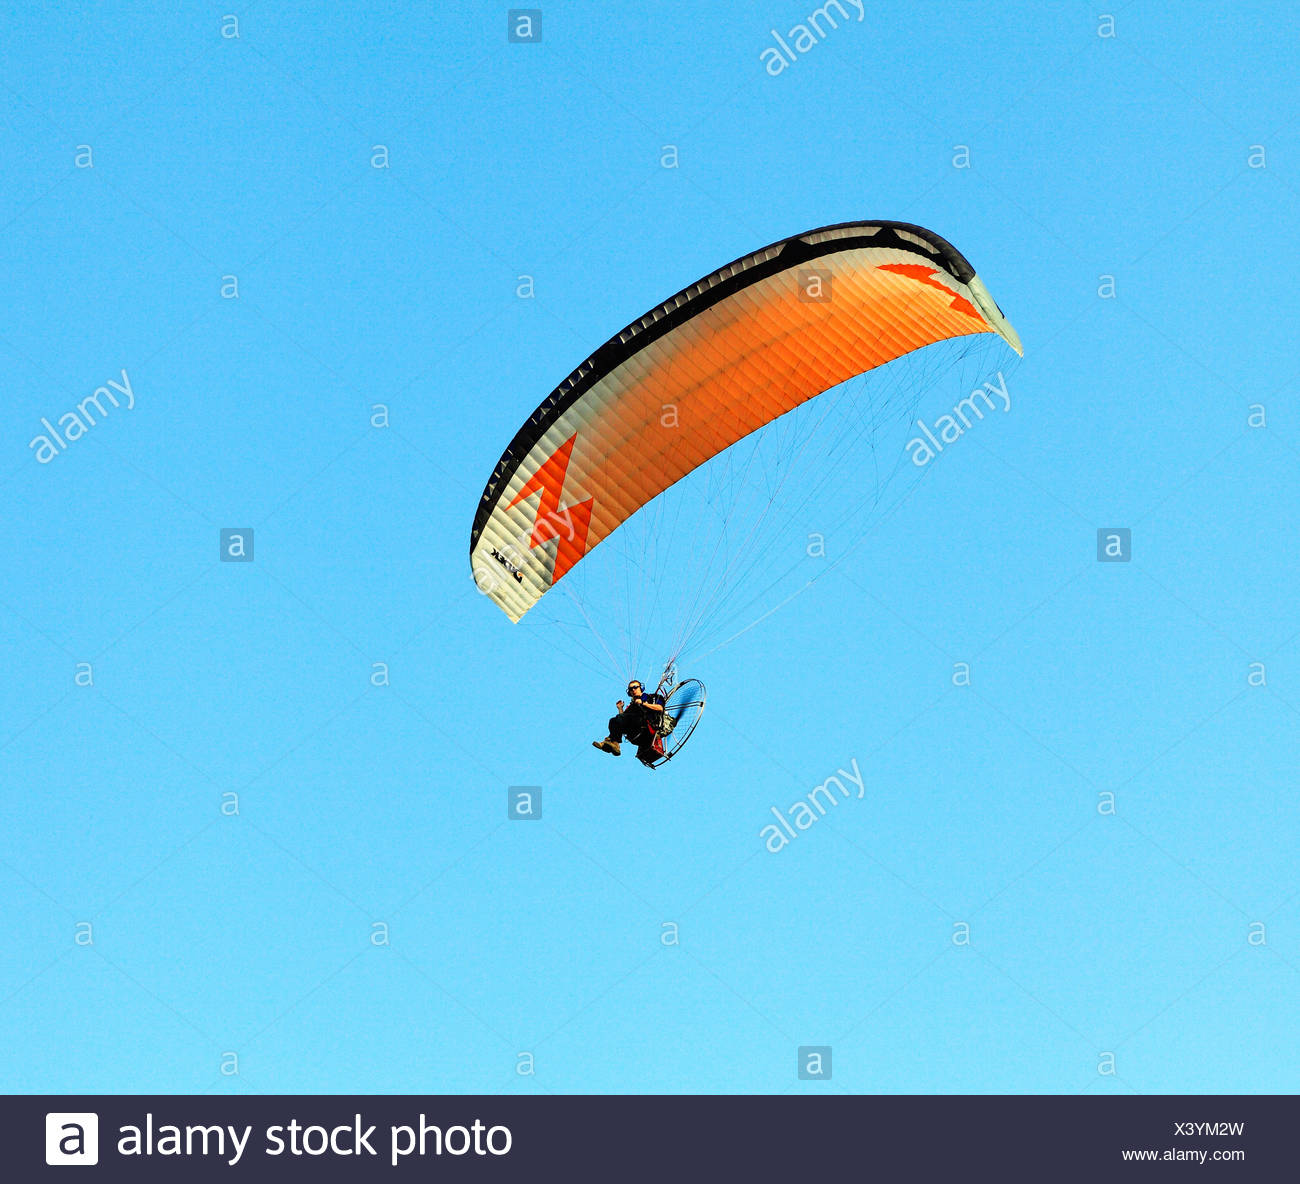 Glider Stock Photos & Glider Stock Images - Page 3 - Alamy